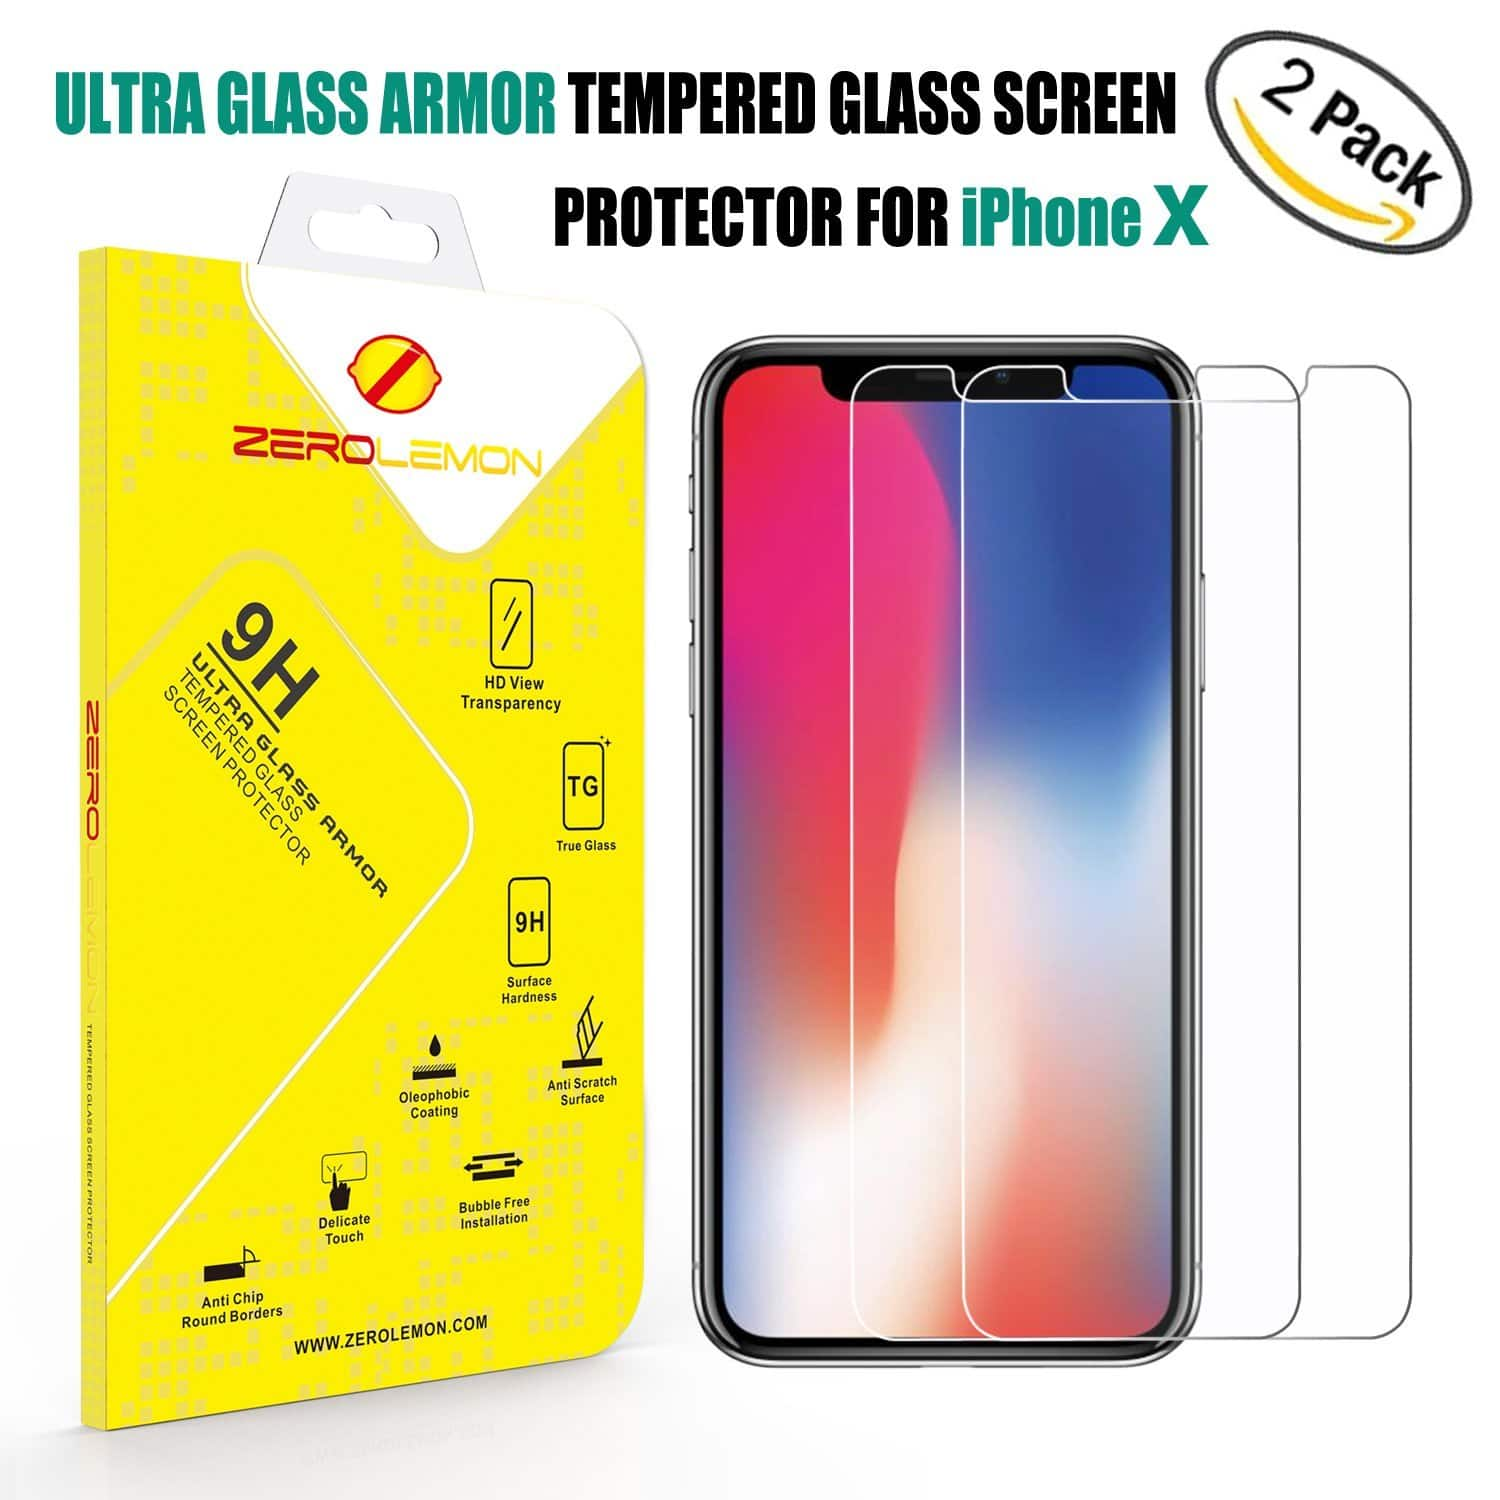 Tempered Glass Screen Protector on Sale for iPhone X (2X $4.2)/iPad Pro (1X $3) /New Surface Pro/Nintendo Switch (2X $3.97)/pixel (2X $3.6)/pixel xl (2X 3.5)/Note 4 ($2.4) @Amazon